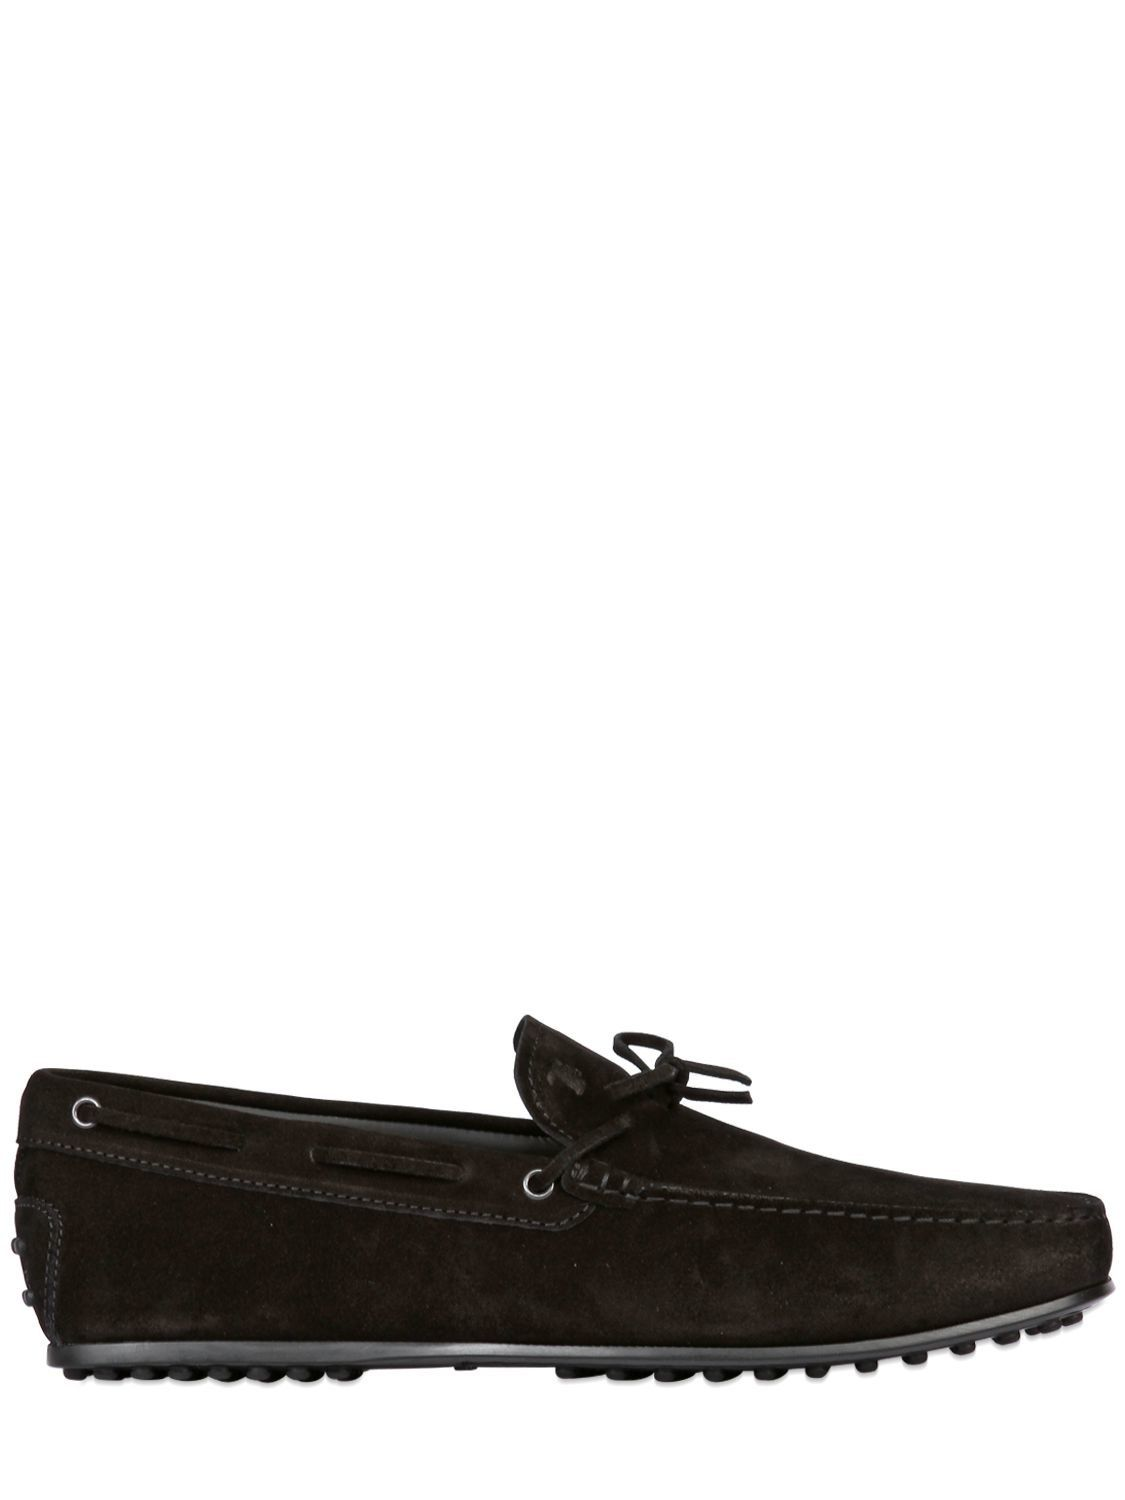 TOD'S CITY GOMMINO TIE SUEDE DRIVING SHOES. #tods #shoes #